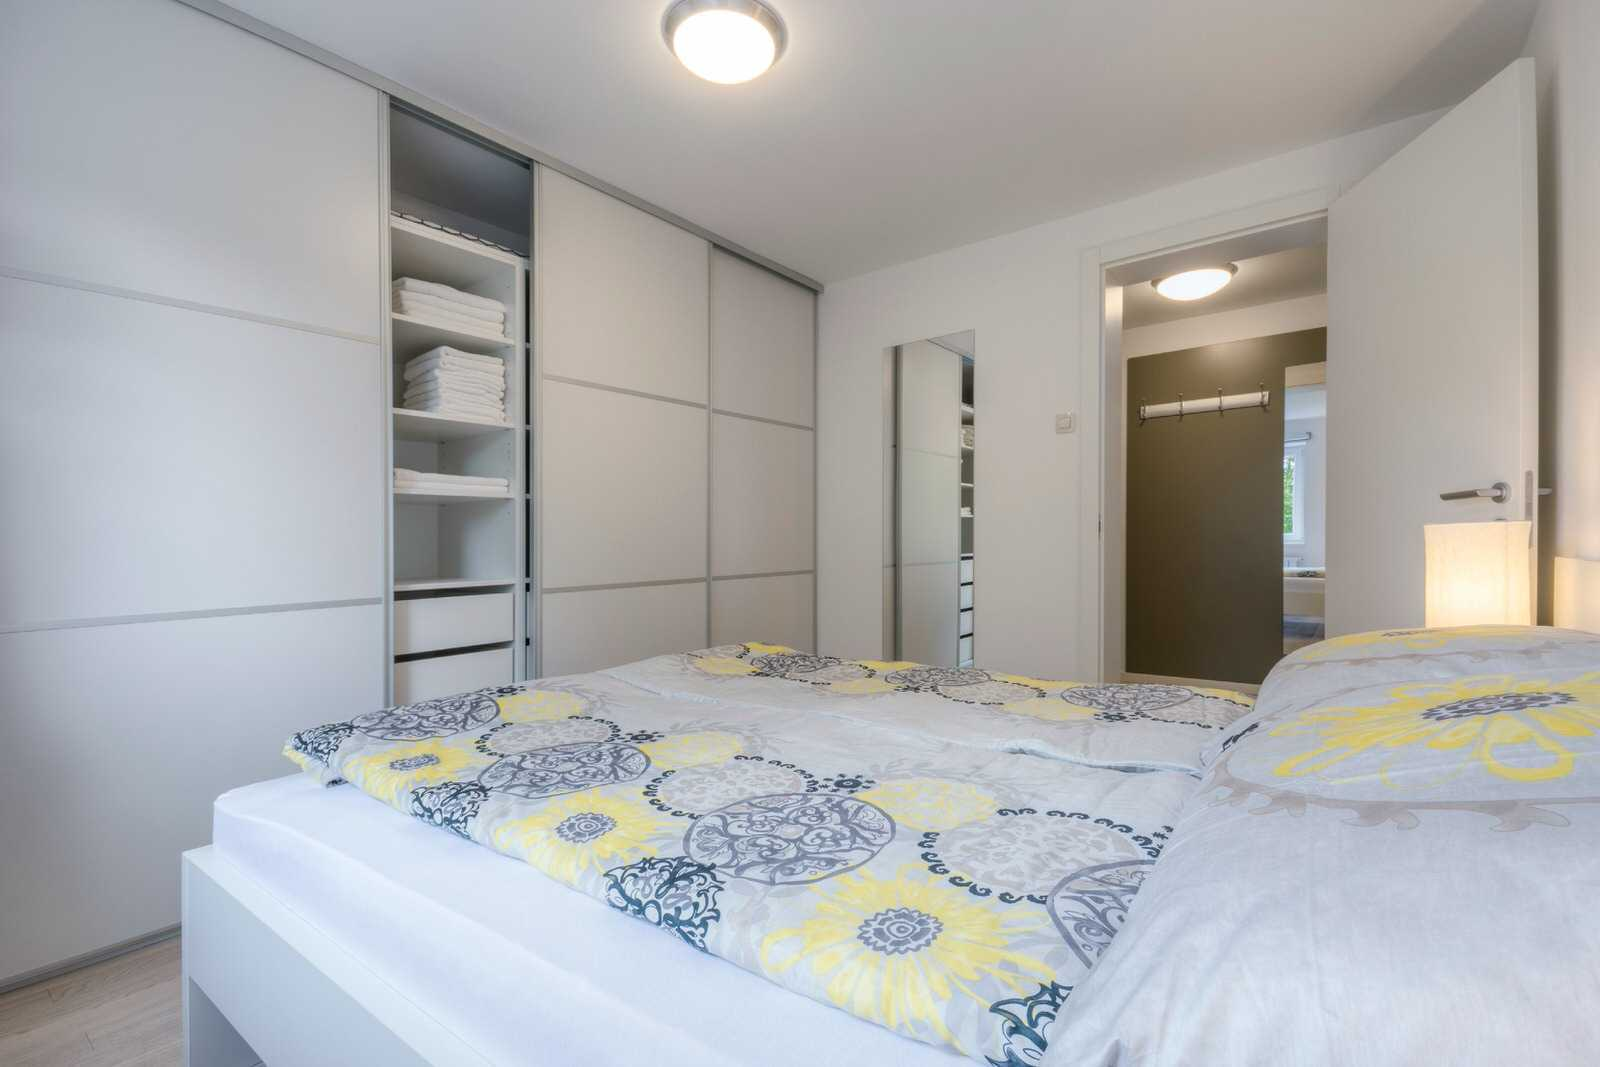 The bedroom features a queen size bed and a large closet.